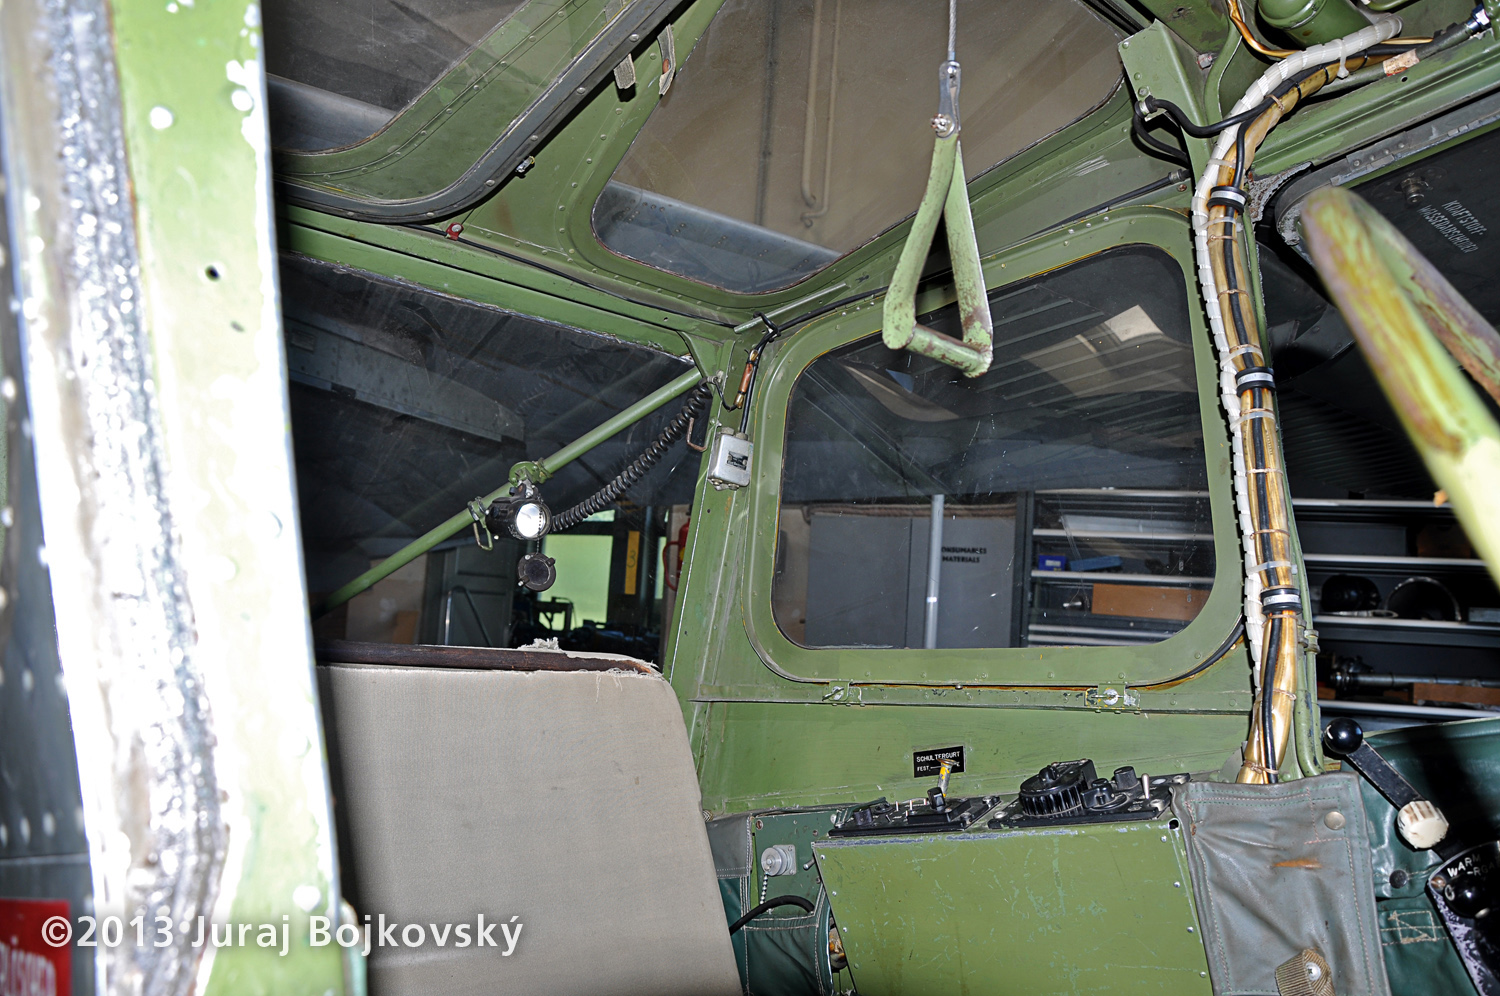 Cessna O-1 / L-19 Bird Dog, Austrian army, Cockpit, rear